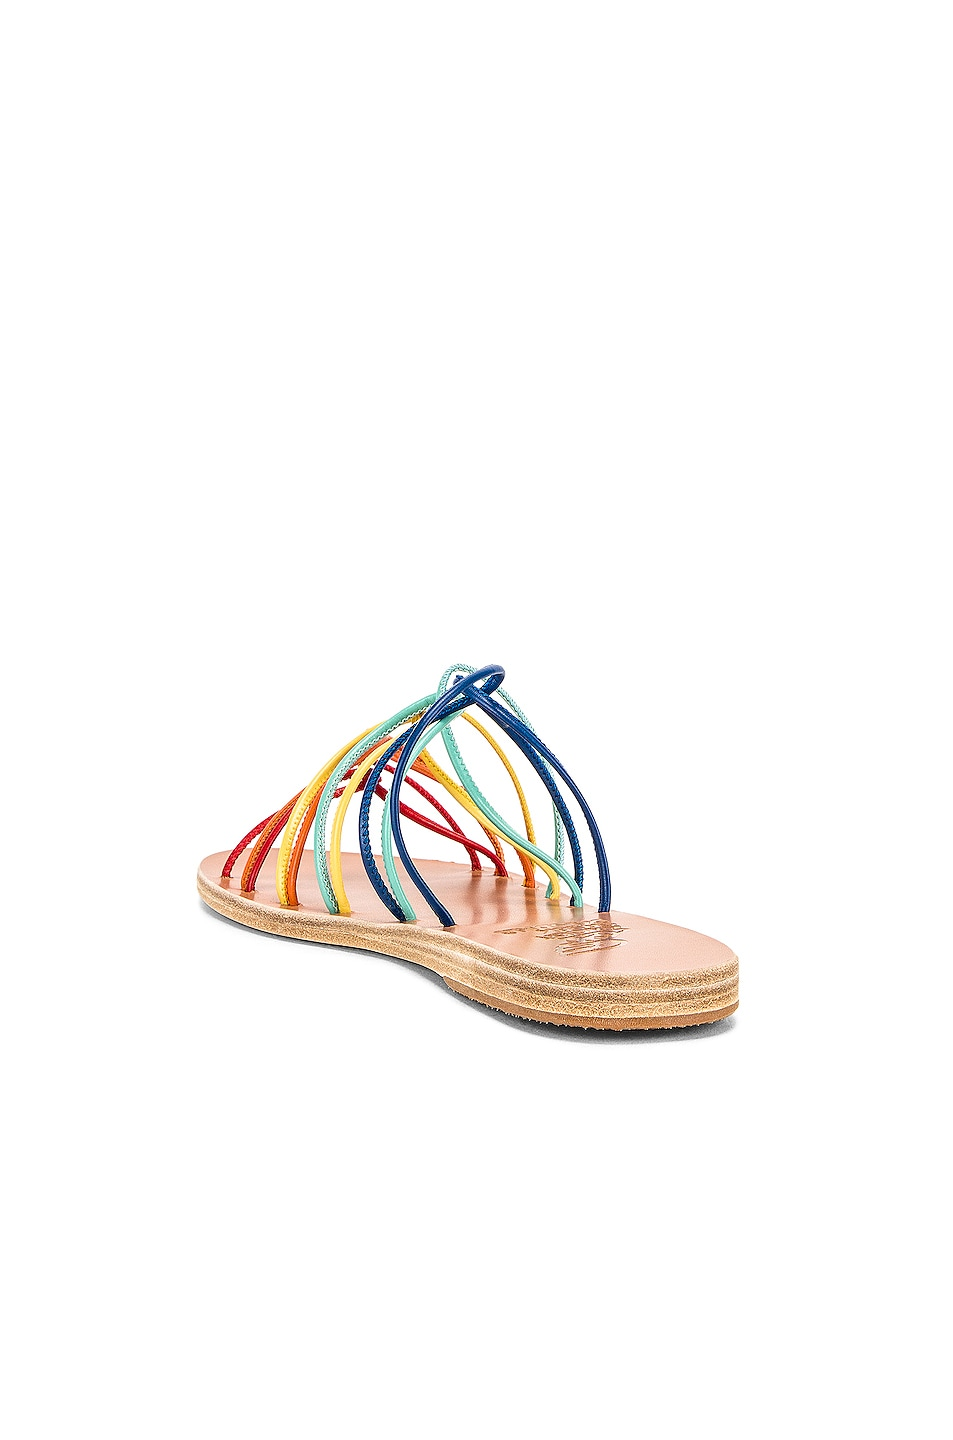 Image 3 of Ancient Greek Sandals Rodopi Sandals in Multi Bright